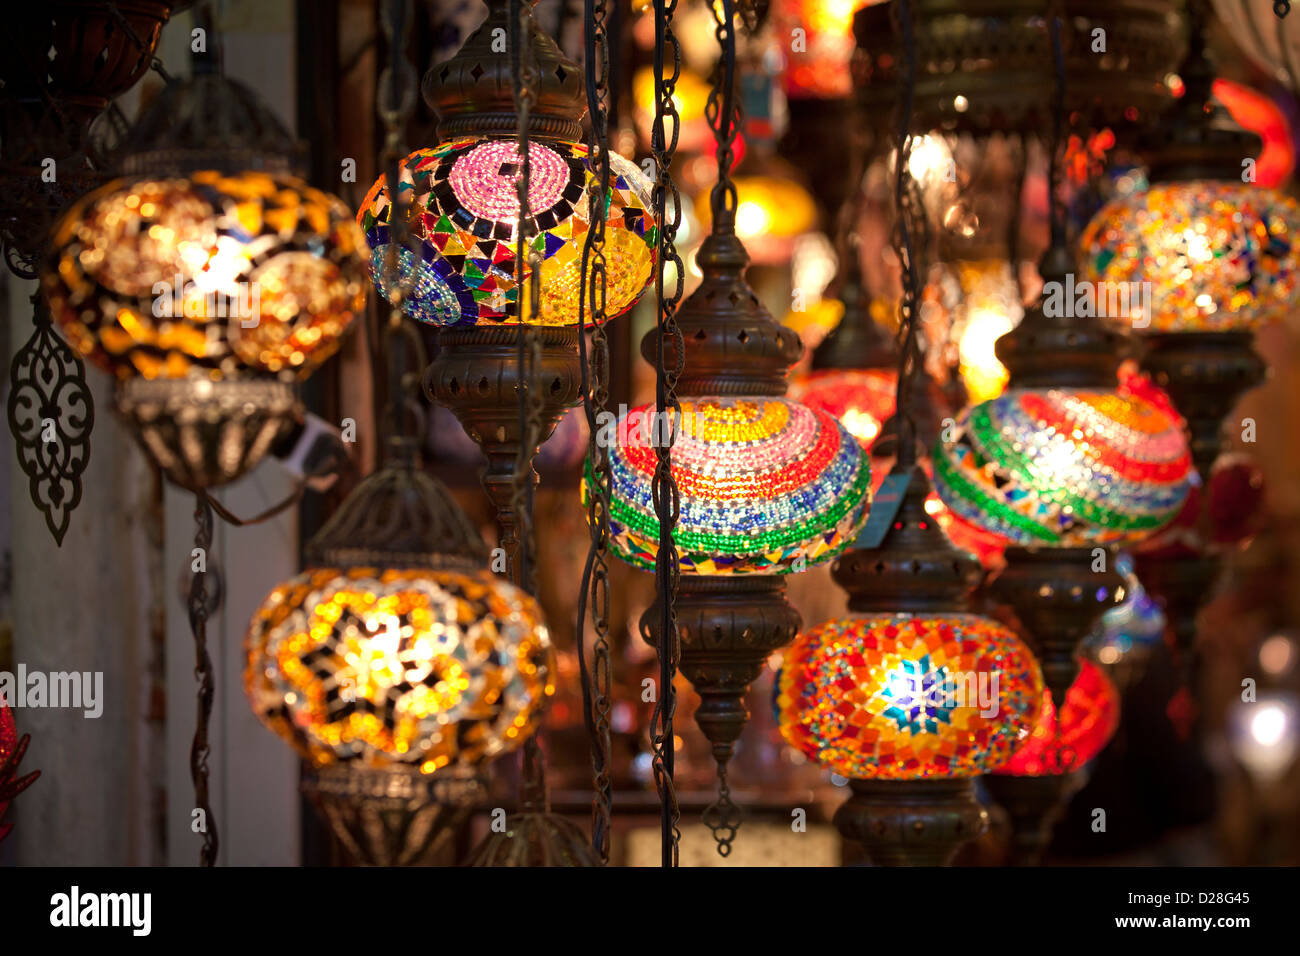 hanging colorful electric turkish glass lanterns lamps in a shop of grand bazaar kapali carsi kapalicarsi